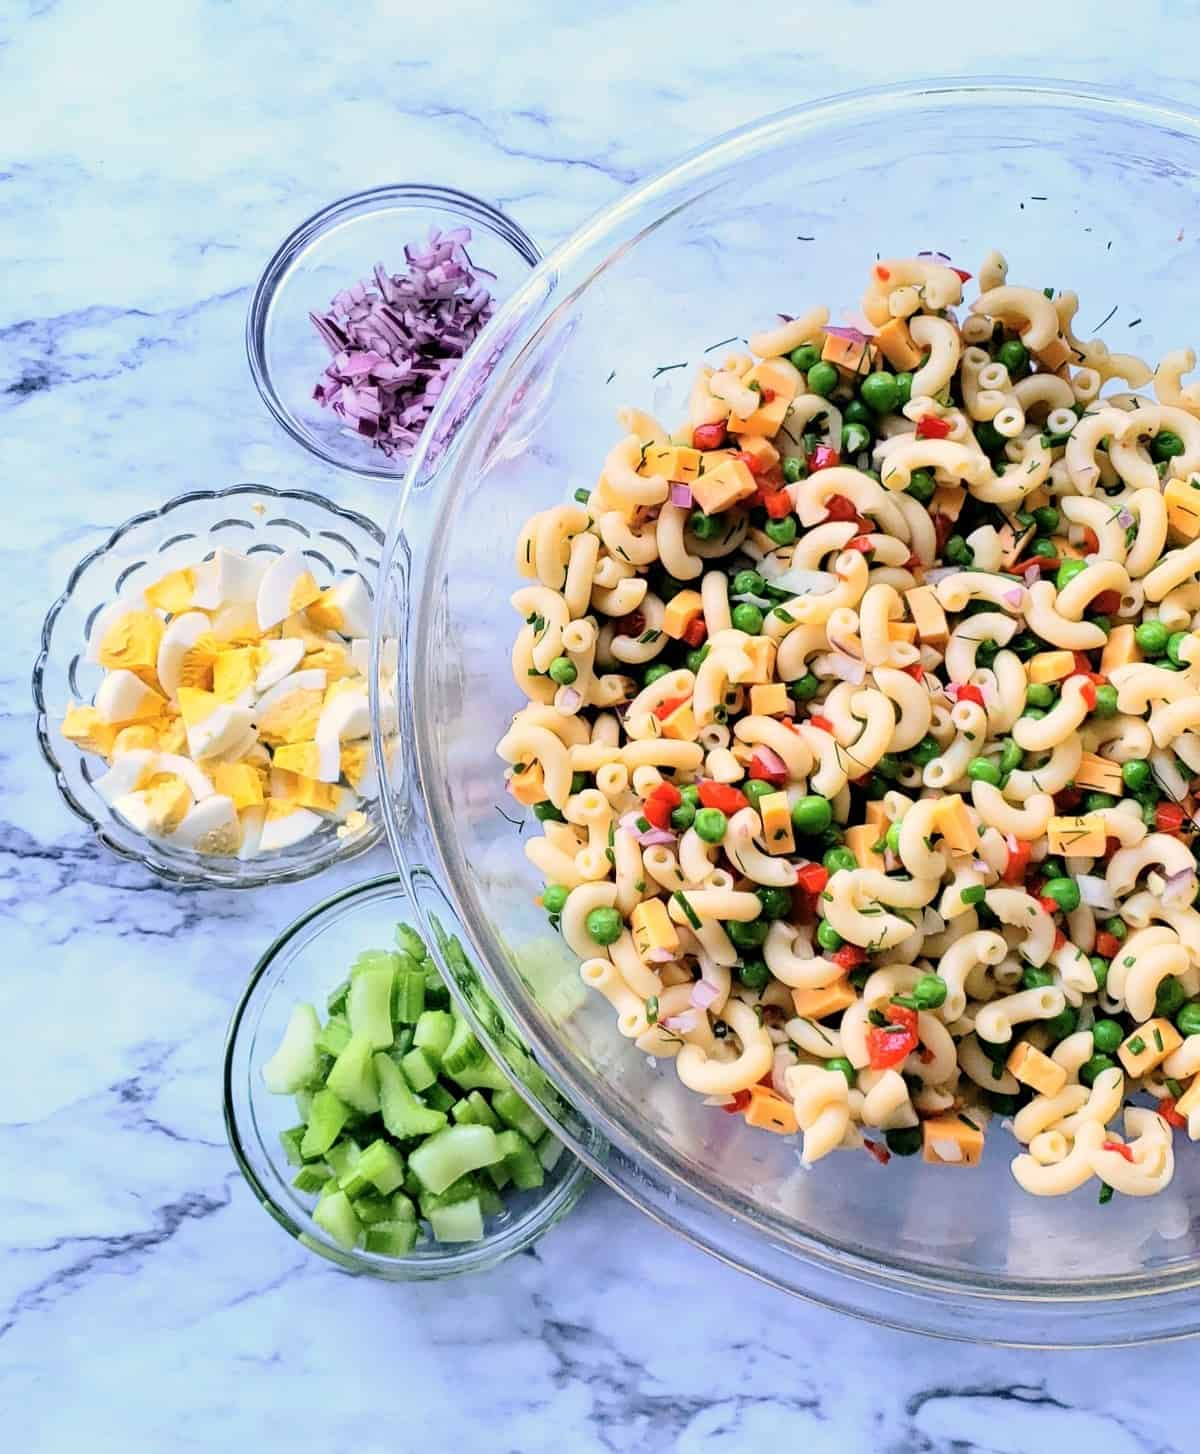 Ingredients for Macaroni Salad in little bowls